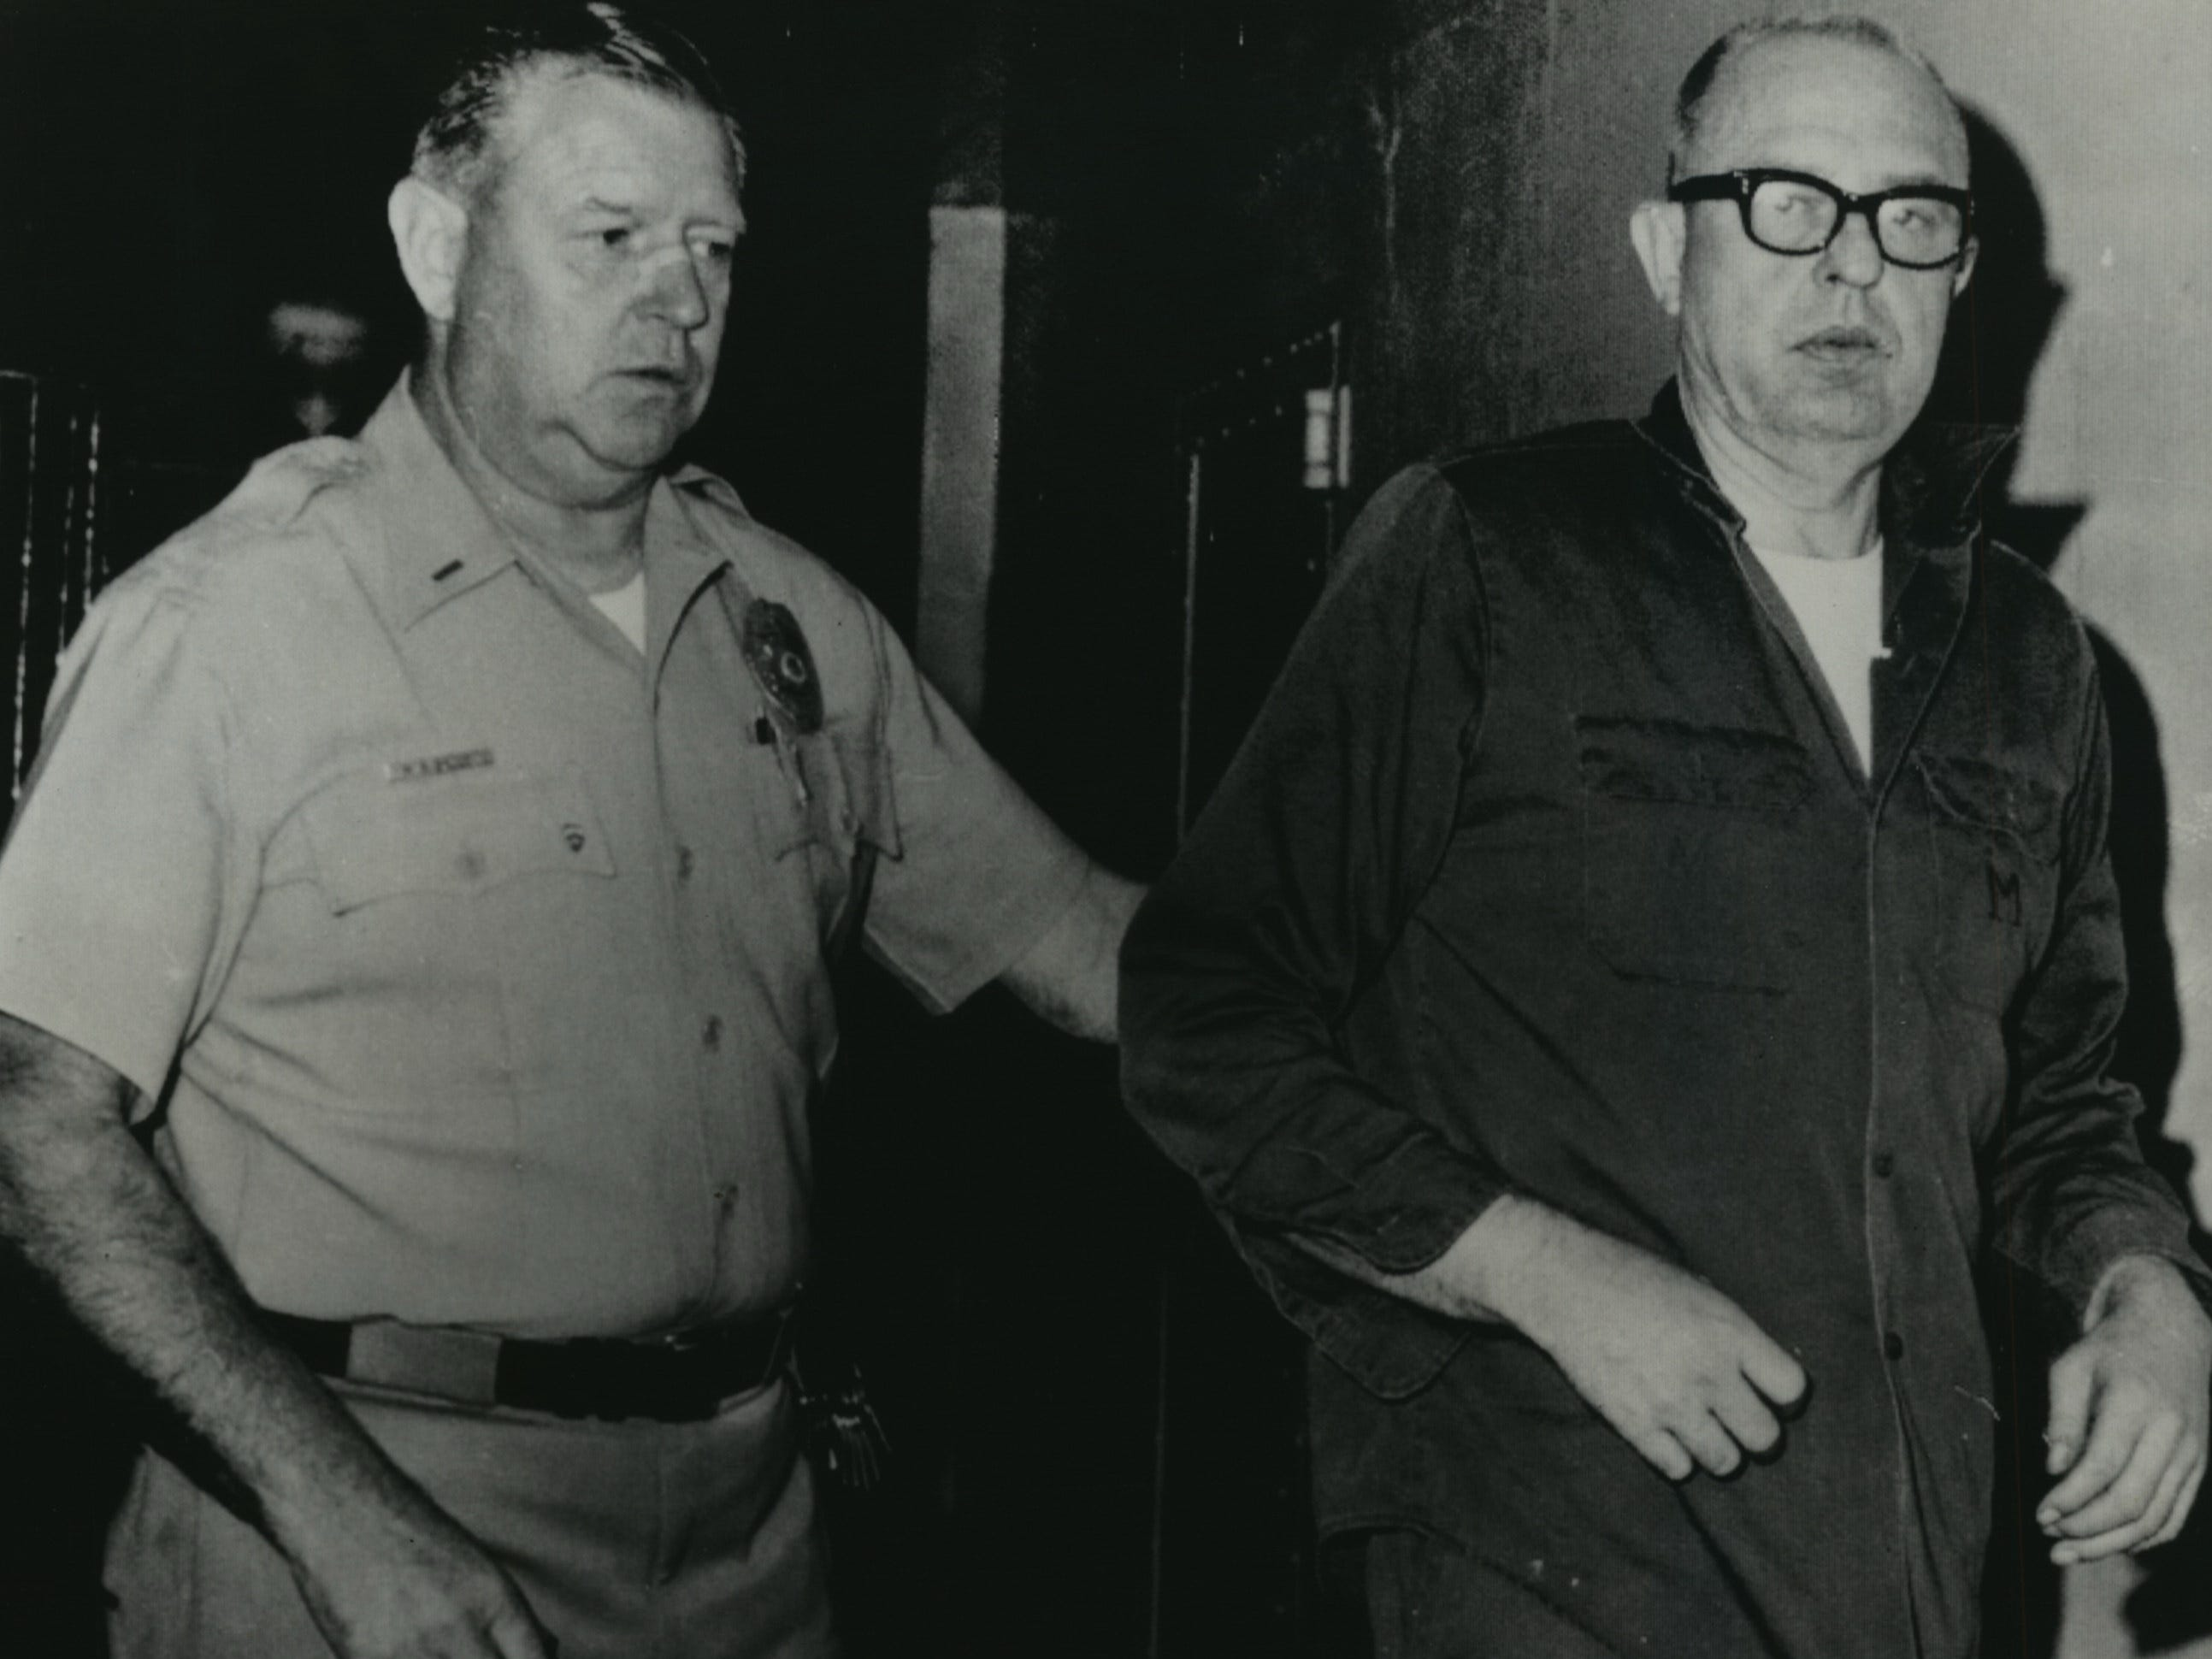 August Bergenthal, 47, accused of shooting industrialist Russell D.L. Wirth to death in Milwaukee, is taken to his cell in the San Diego city jail after questioning. He was arrested Sept. 21, 1968, the day after he allegedly shot and killed Wirth, a former associate. This photo was published in both the Milwaukee Sentinel and Milwaukee Journal on Sept. 23, 1968.